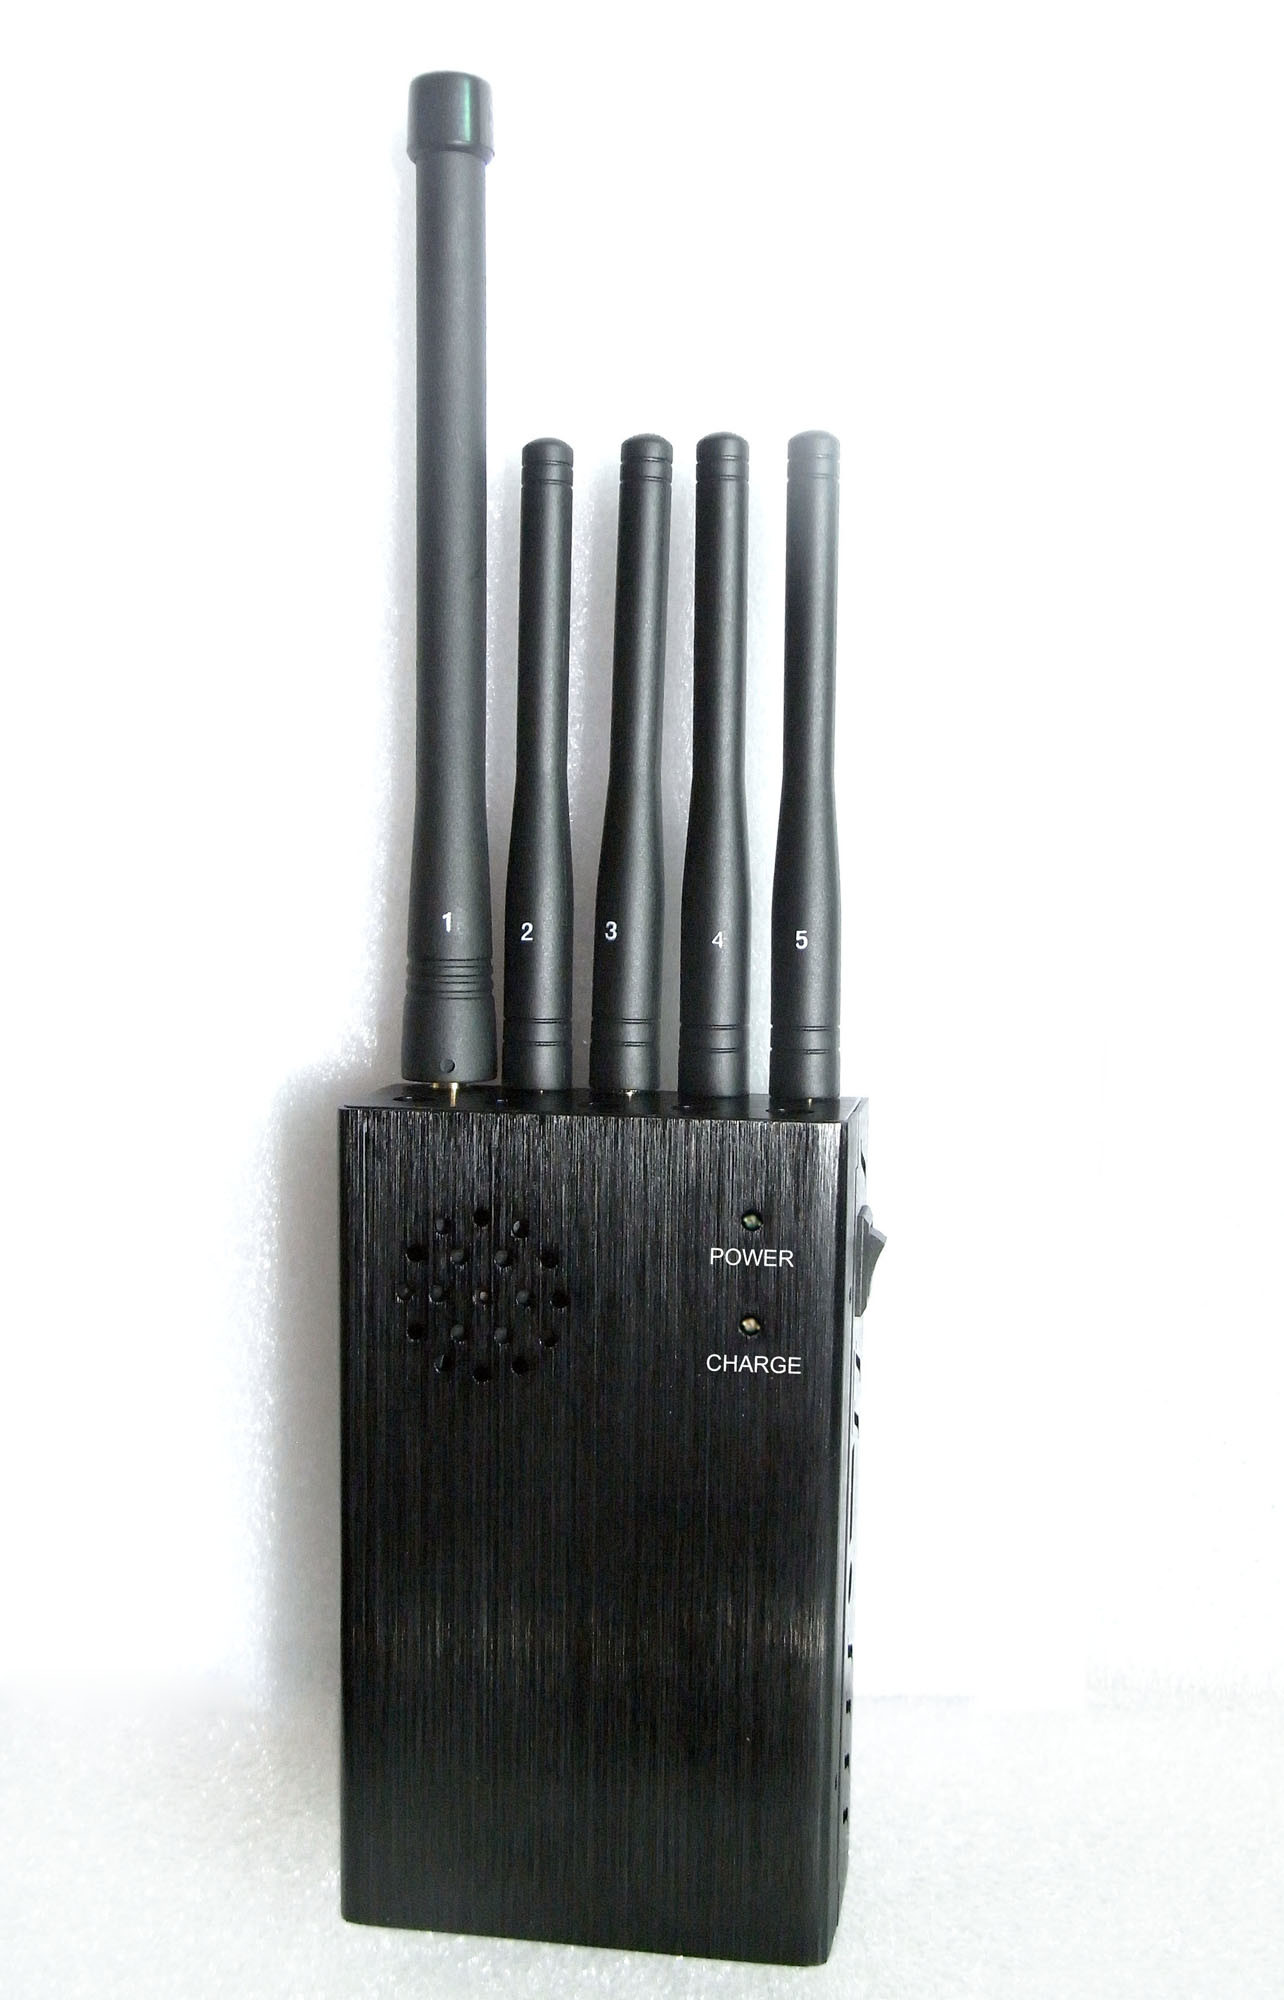 China New 5 Antenna 3G 4glte Wimax Wireless Signal Jammers, High Power Handheld Portable Cellphone Wireless Jammer - China 5 Band Signal Blockers, Five Antennas Jammers